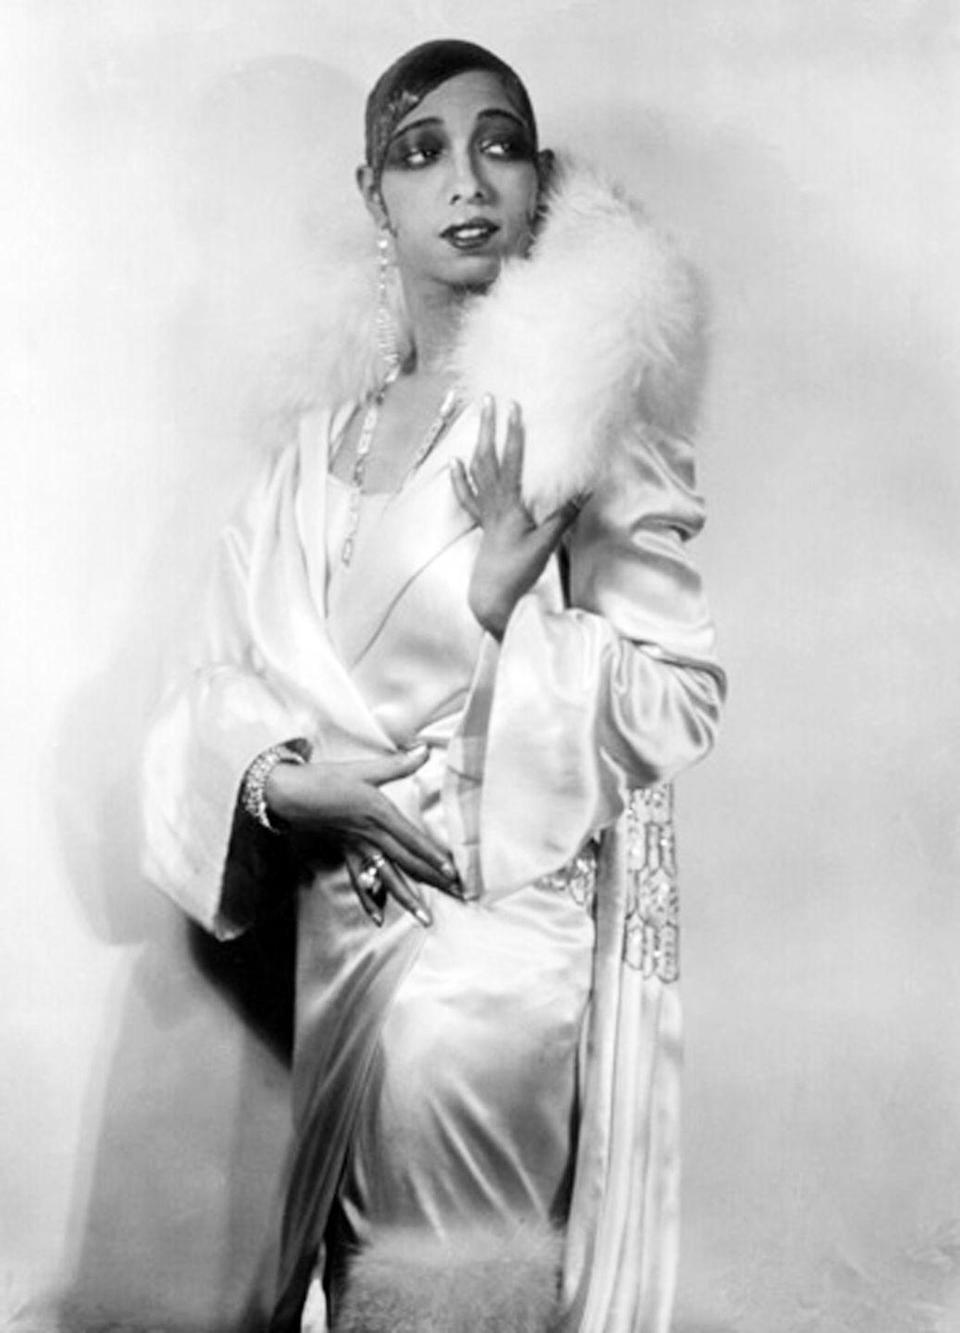 """<p>Not long after Baker ran away from home, she met her first husband, Willie Wells, who was an automated pullman. Baker married him when she was 13, but the two were <a href=""""https://www.biography.com/performer/josephine-baker"""" rel=""""nofollow noopener"""" target=""""_blank"""" data-ylk=""""slk:divorced within weeks"""" class=""""link rapid-noclick-resp"""">divorced within weeks</a>.</p>"""